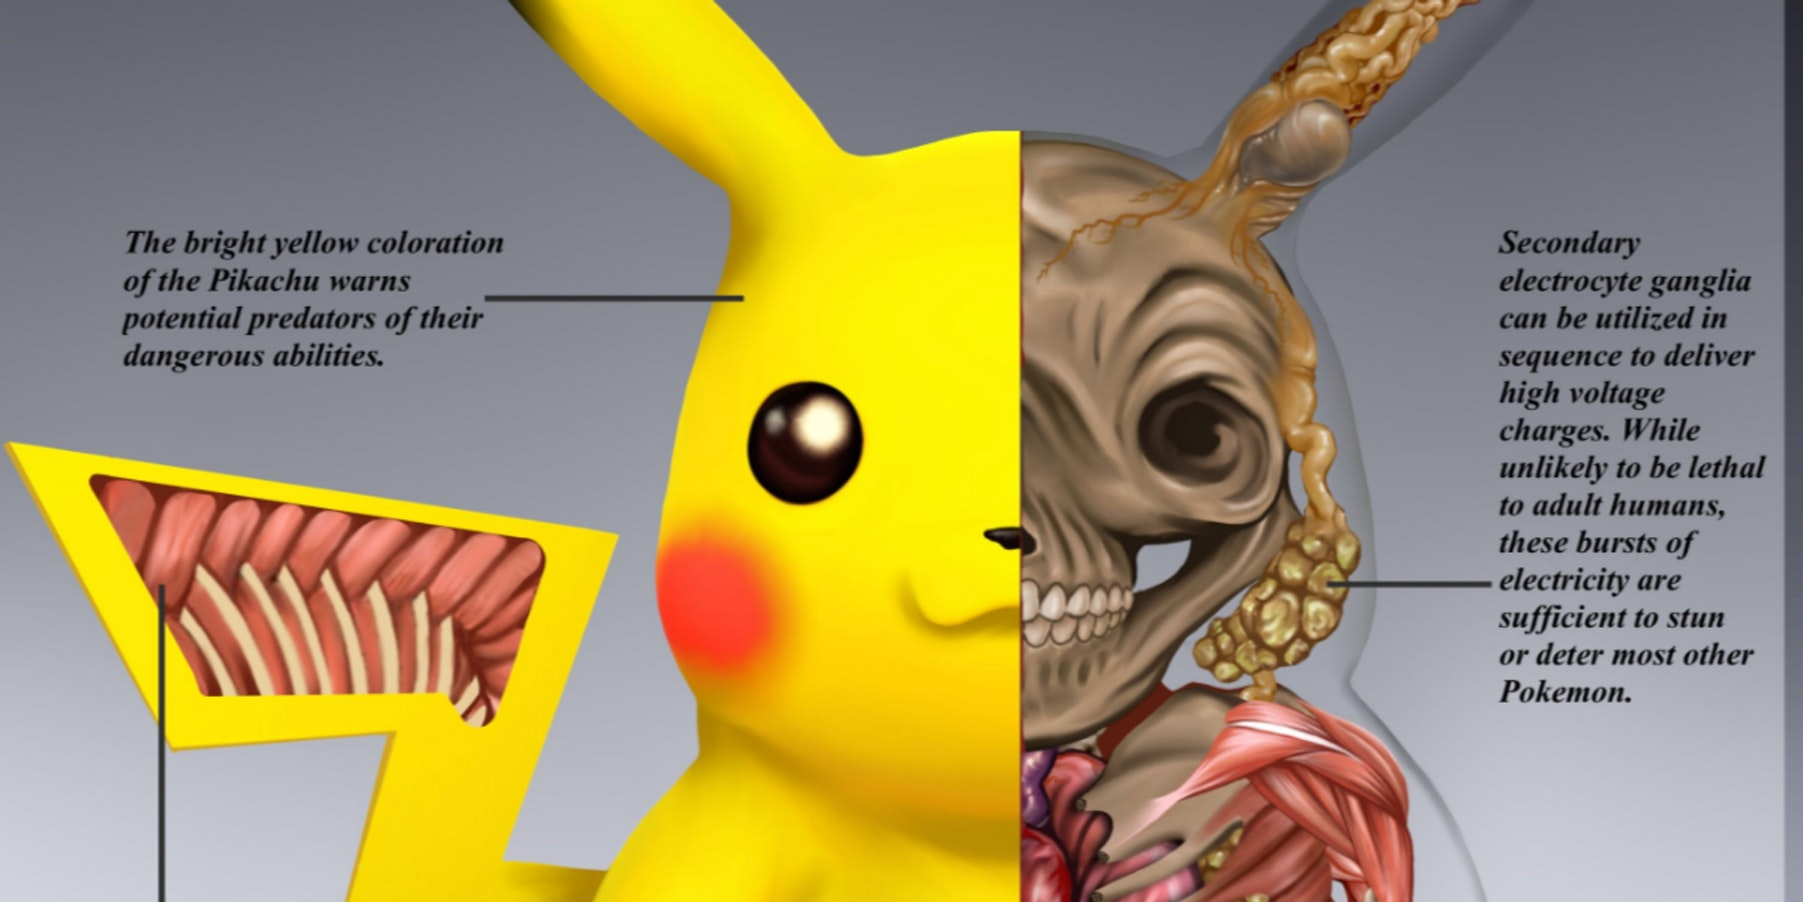 Pikachu is a Pokmon that is drawn here.